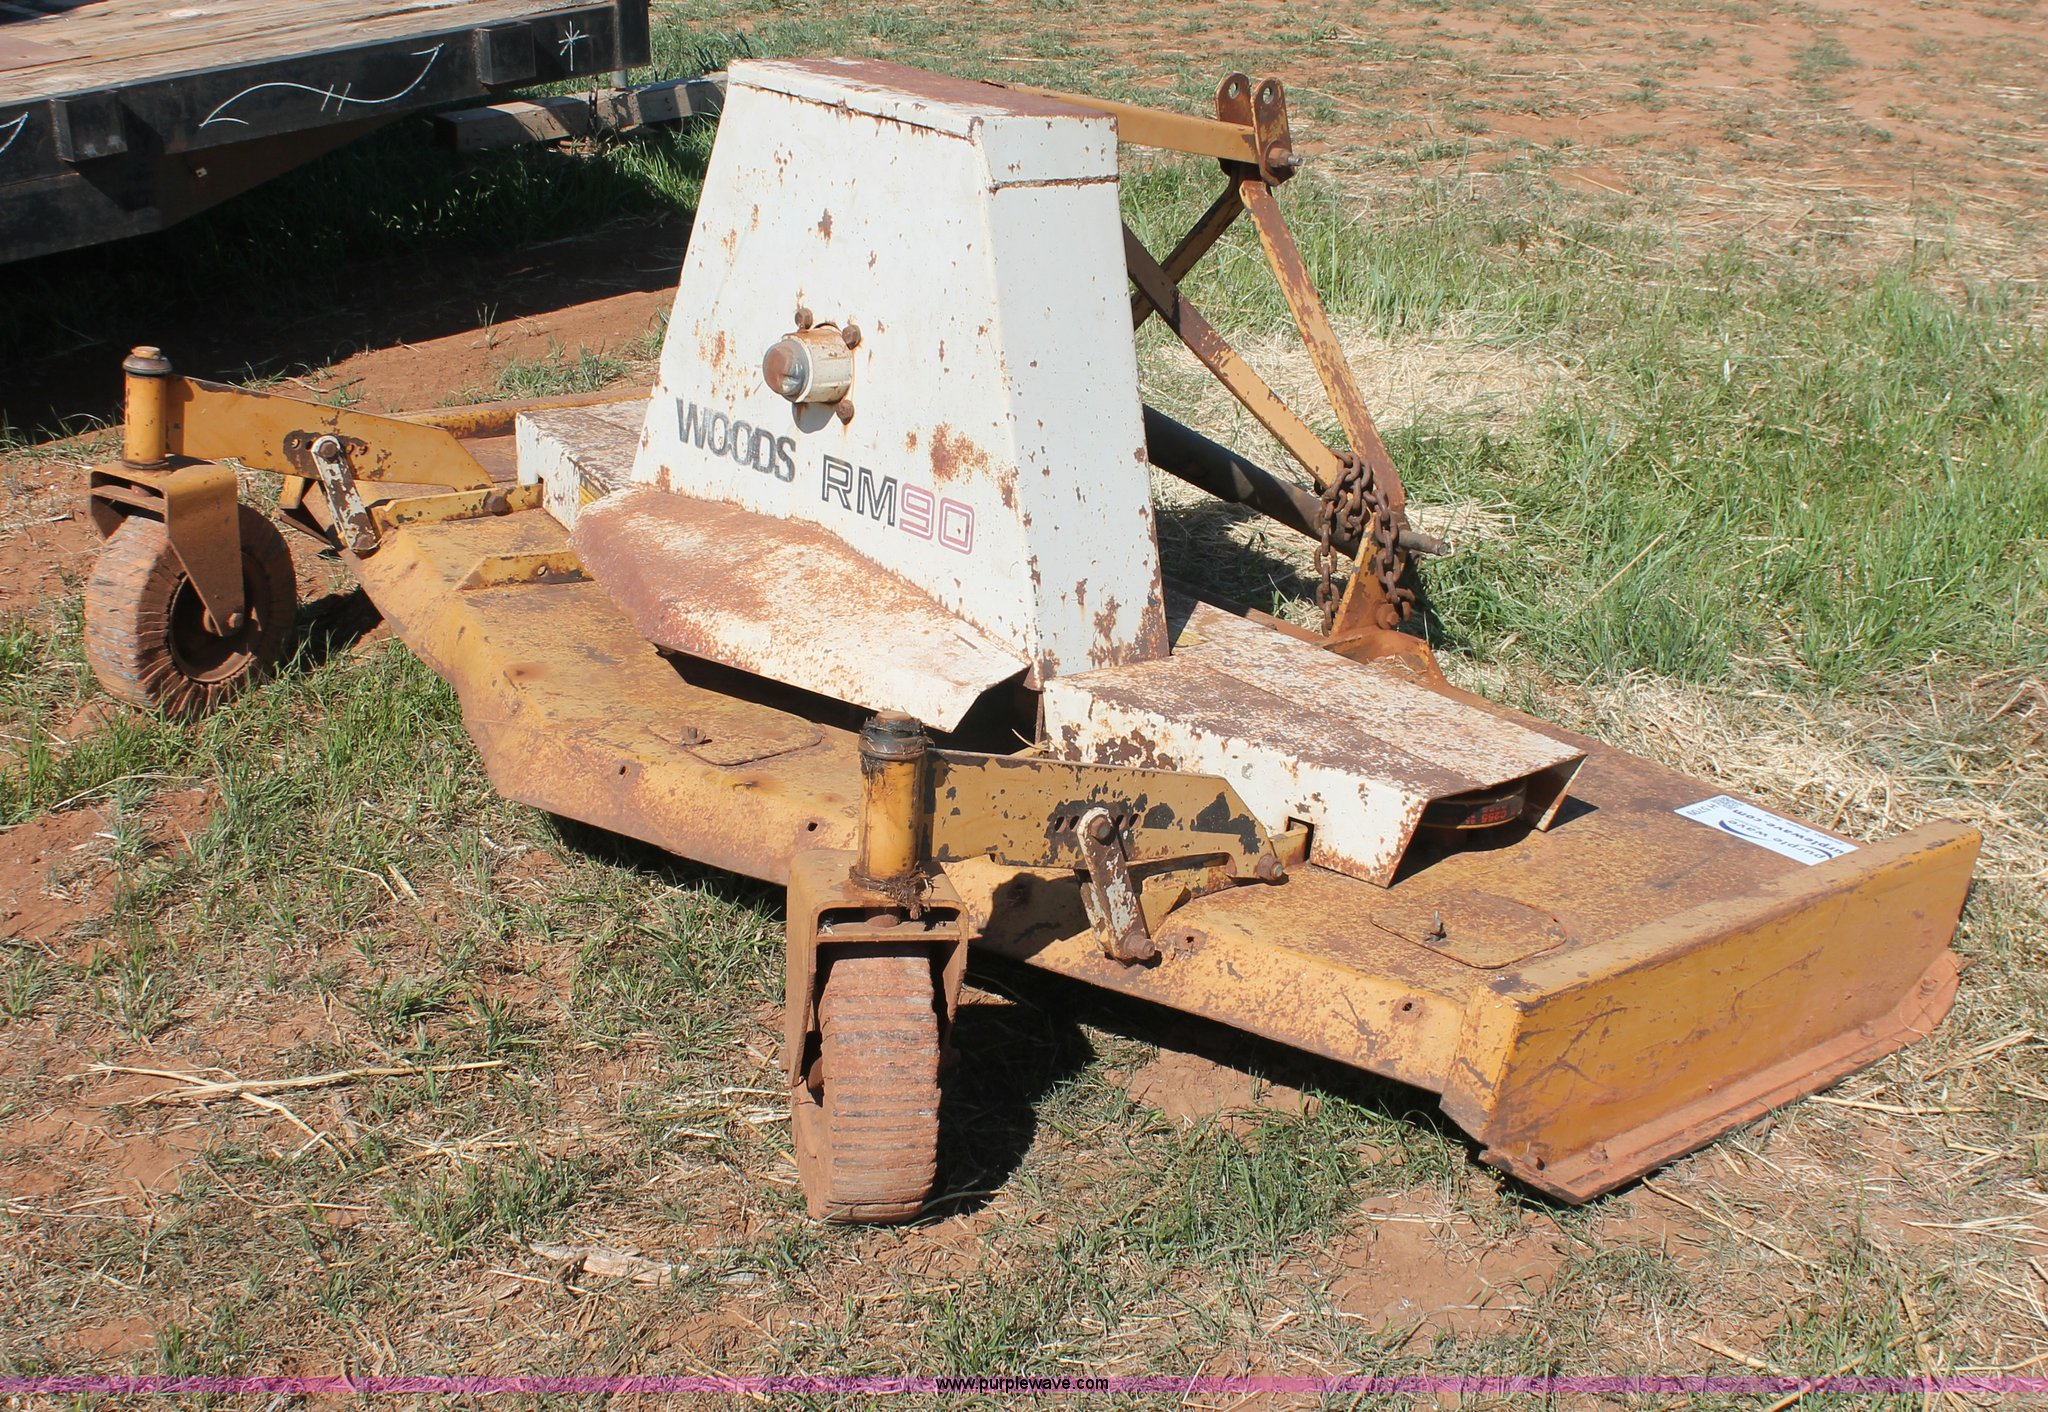 Woods RM90 finish mower | Item H5709 | SOLD! May 14 Vehicles